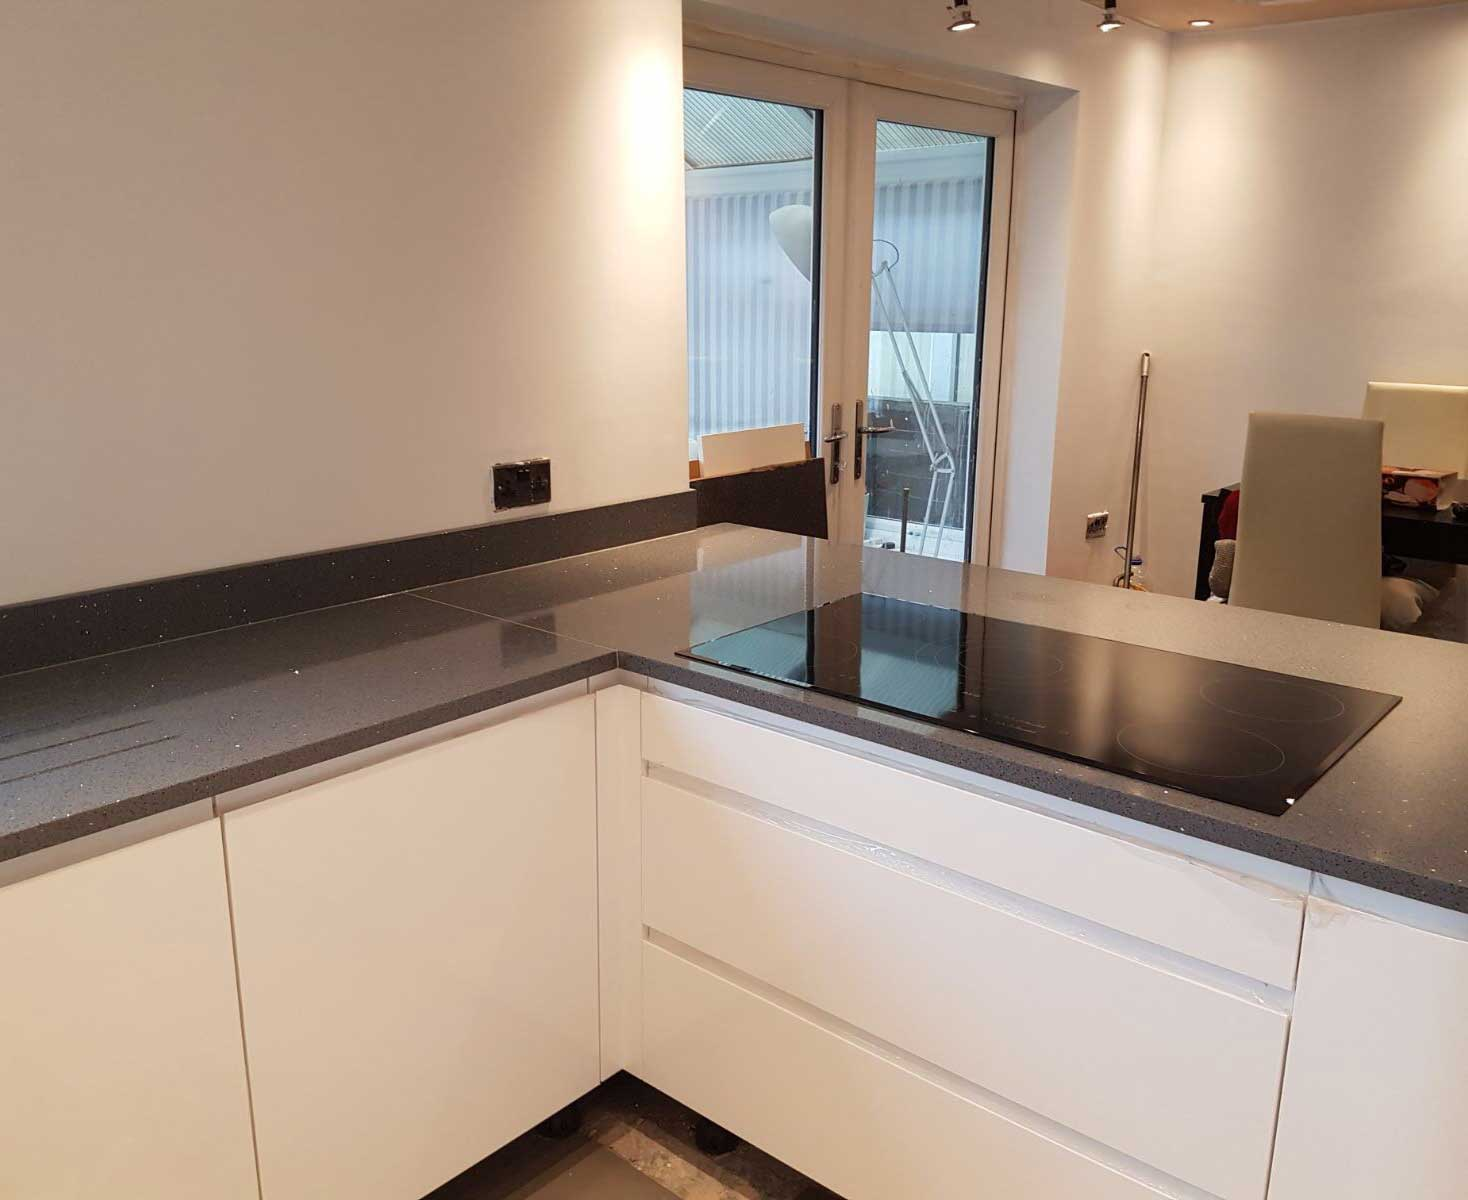 Installing Kitchen Worktops Are Among The Most Popular Renovations People  Are Making To Their Homes At Present, And This Is One Area We At The Marble  Man ...